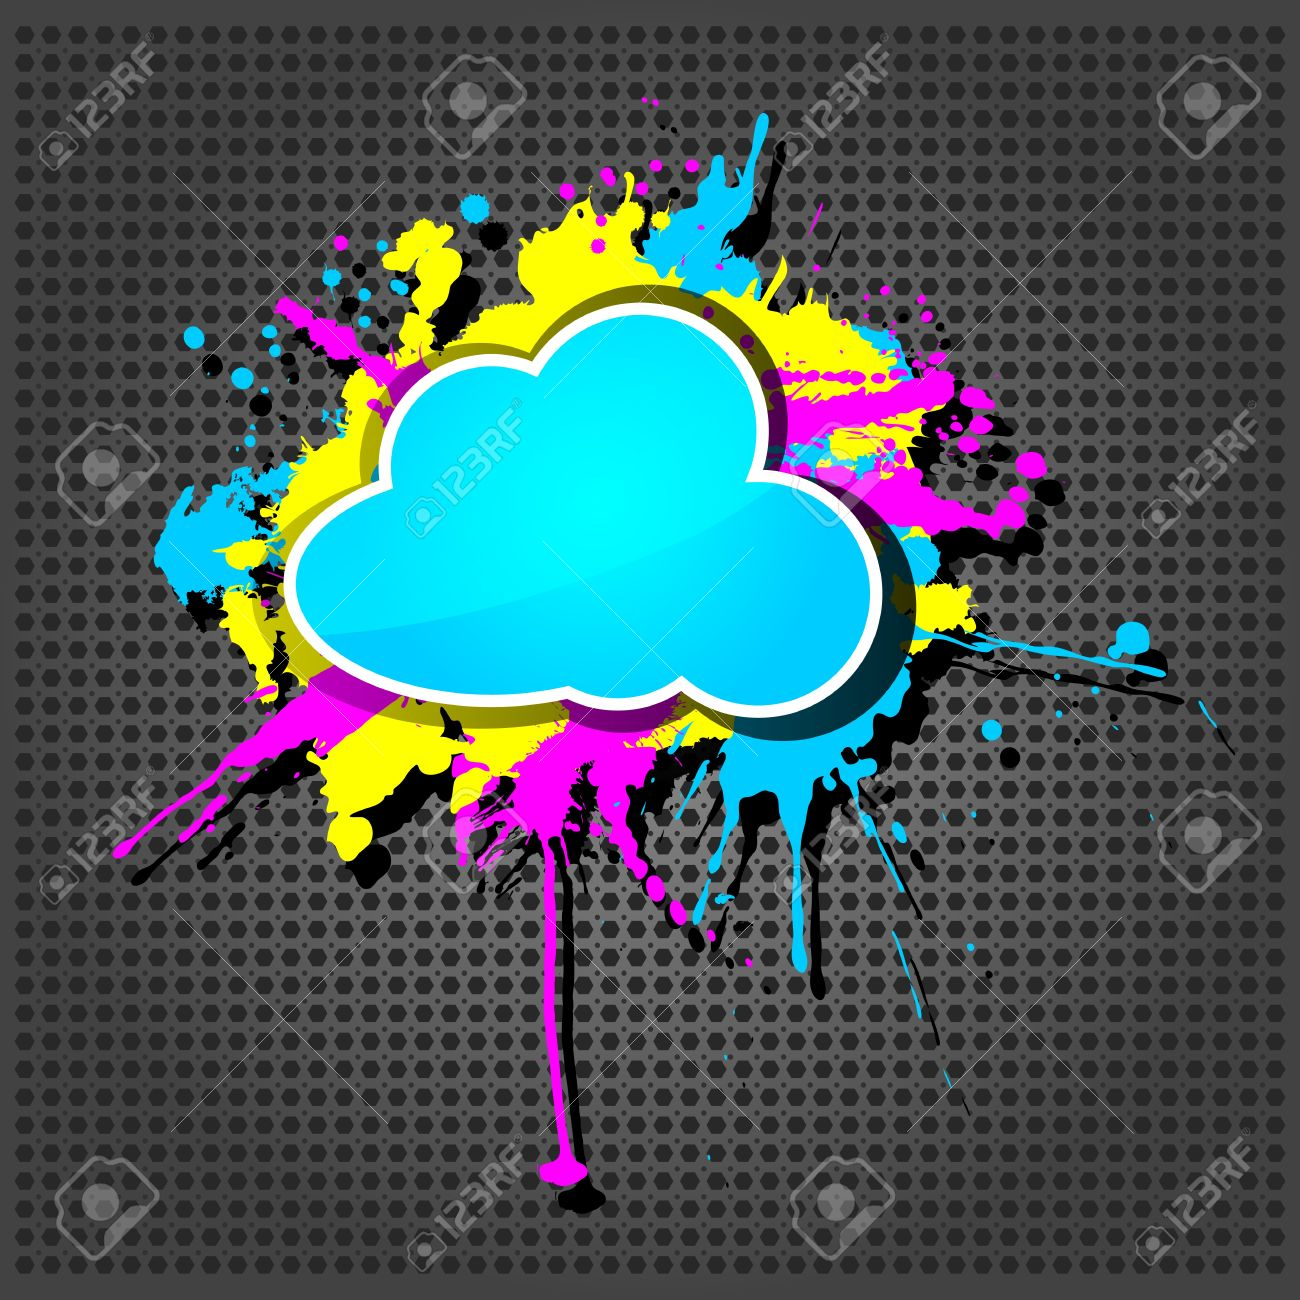 Cute  grunge cloud computing icon frame on the metallic background Stock Vector - 15125699